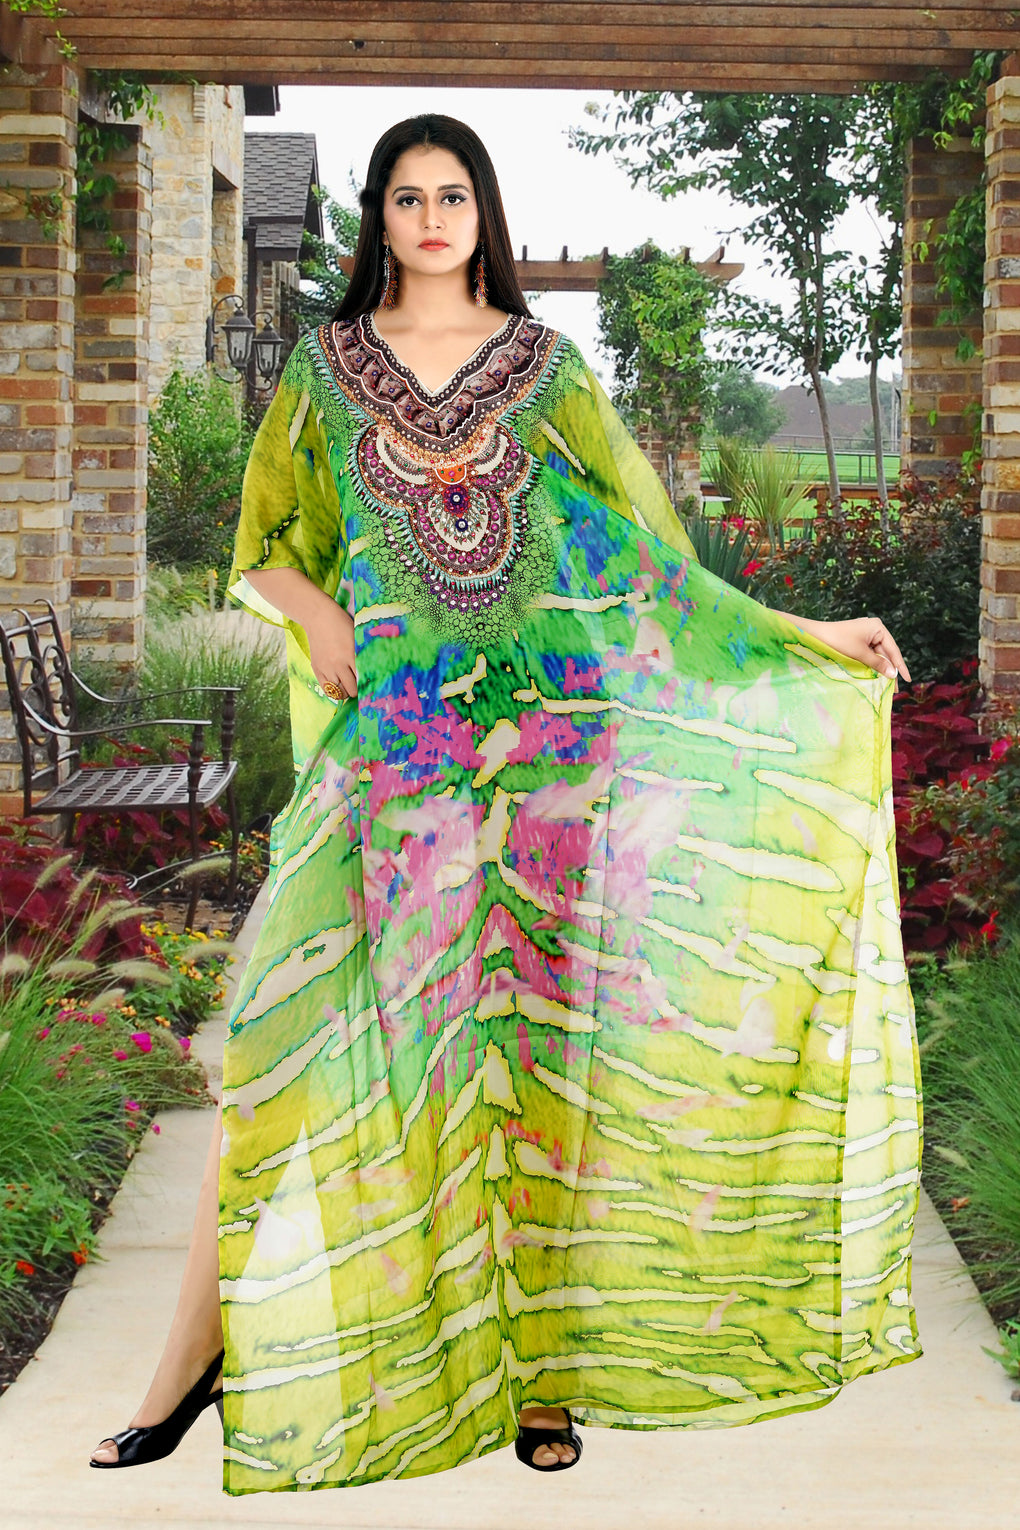 Green Camouflage Print Silk Kaftan Dress designed for Special events and Holidays - Silk kaftan